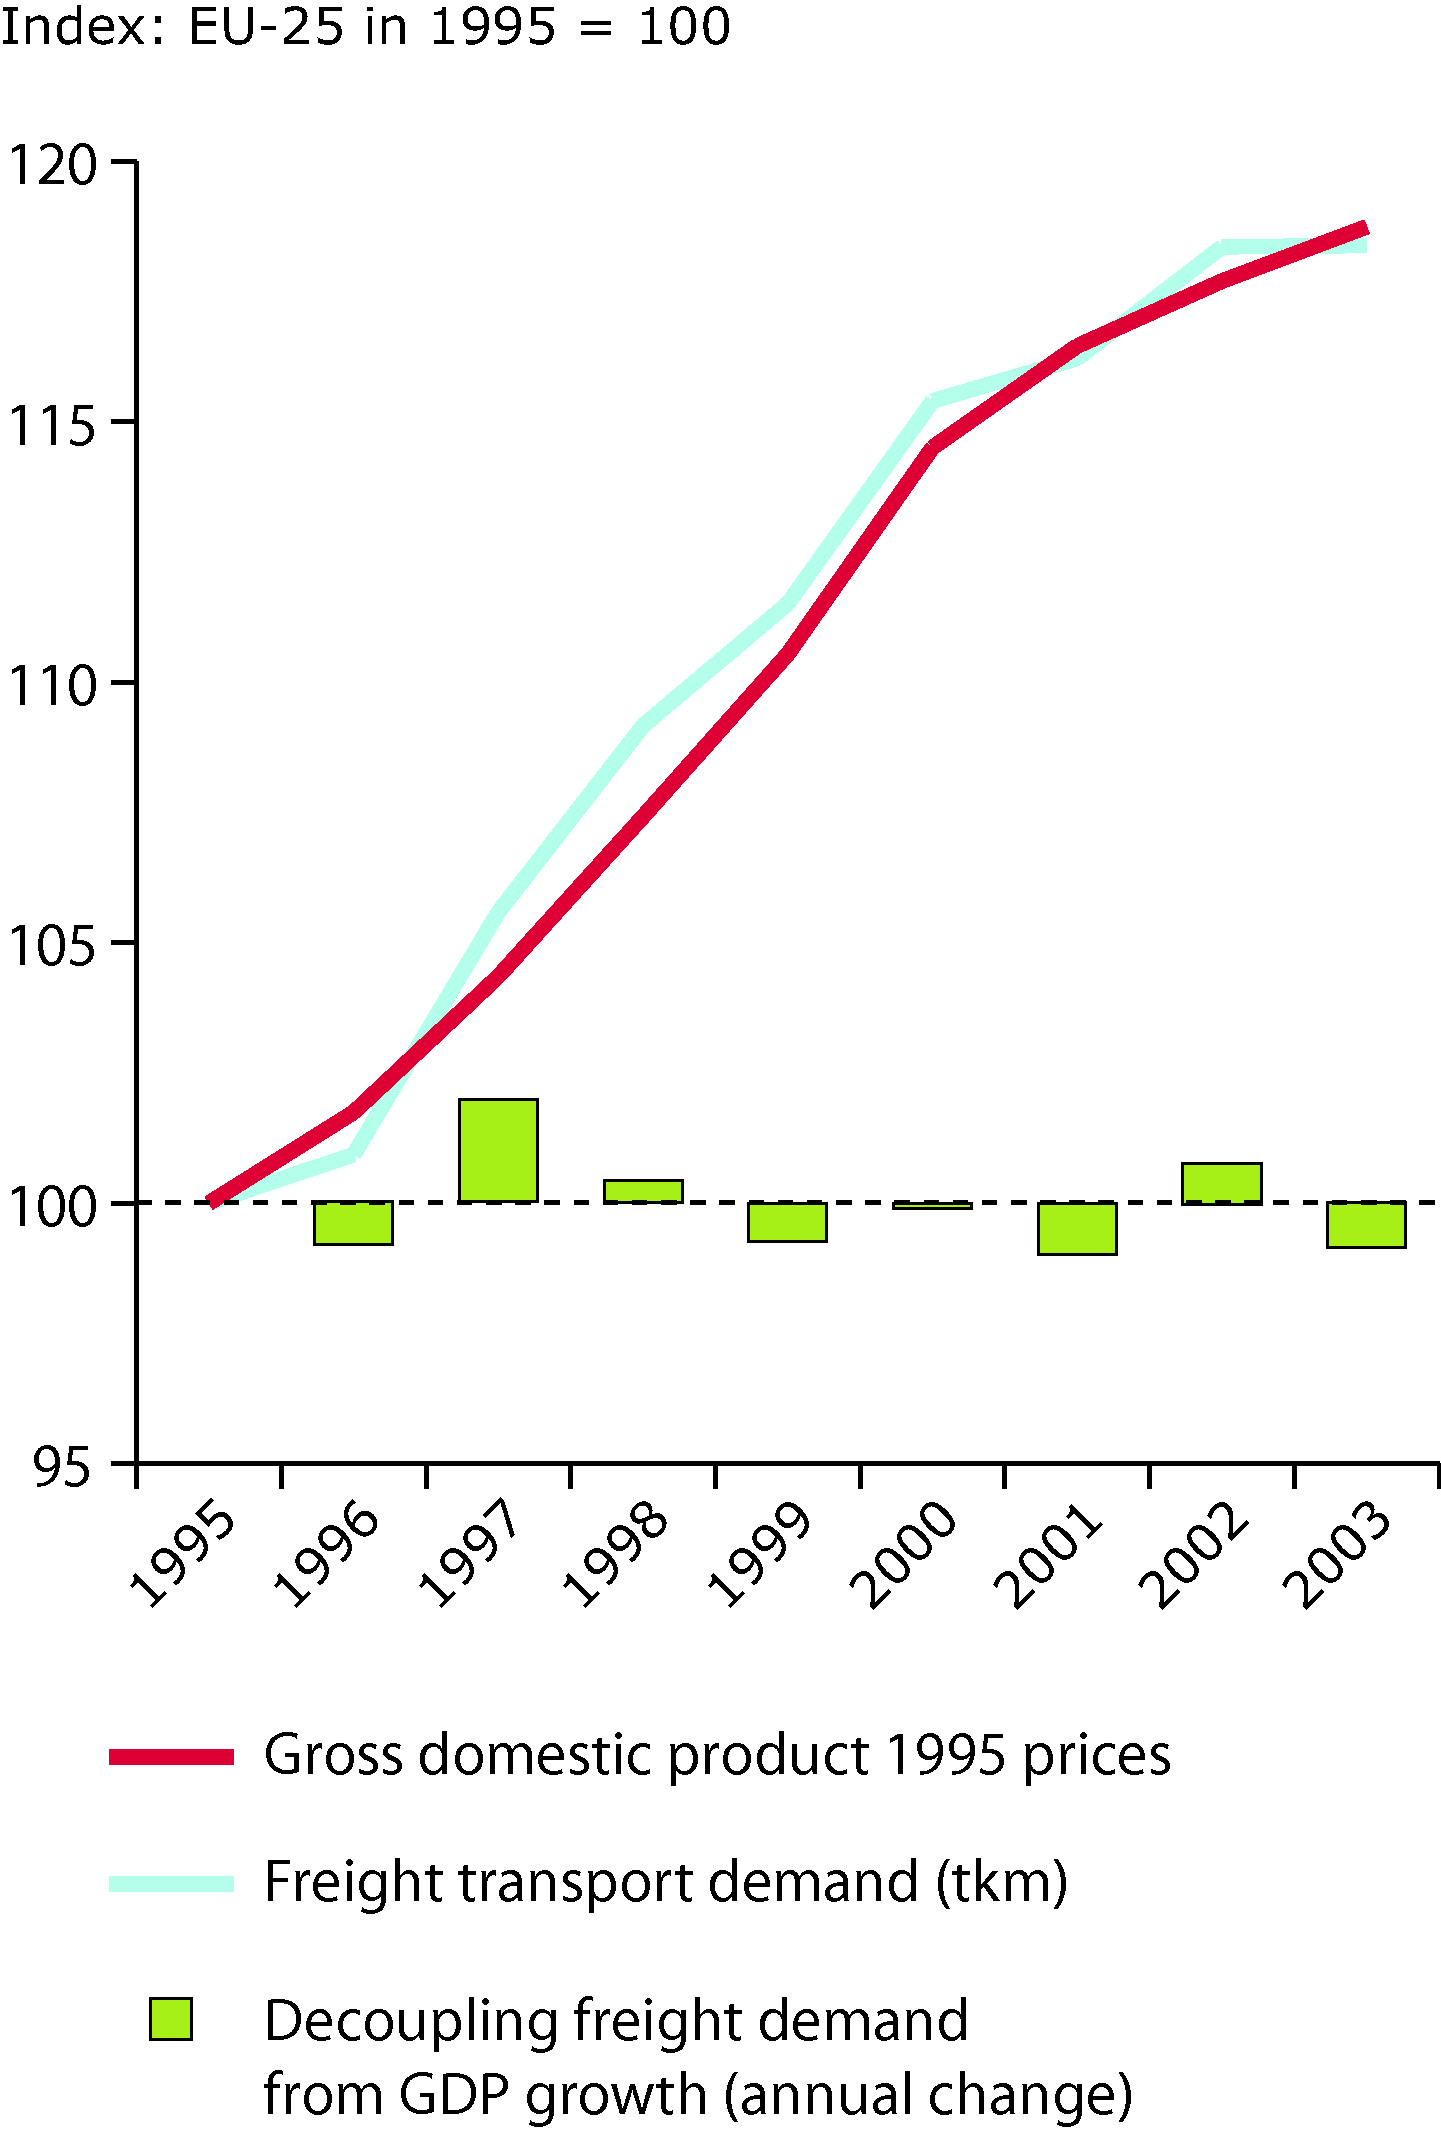 Trend in freight transport demand and GDP